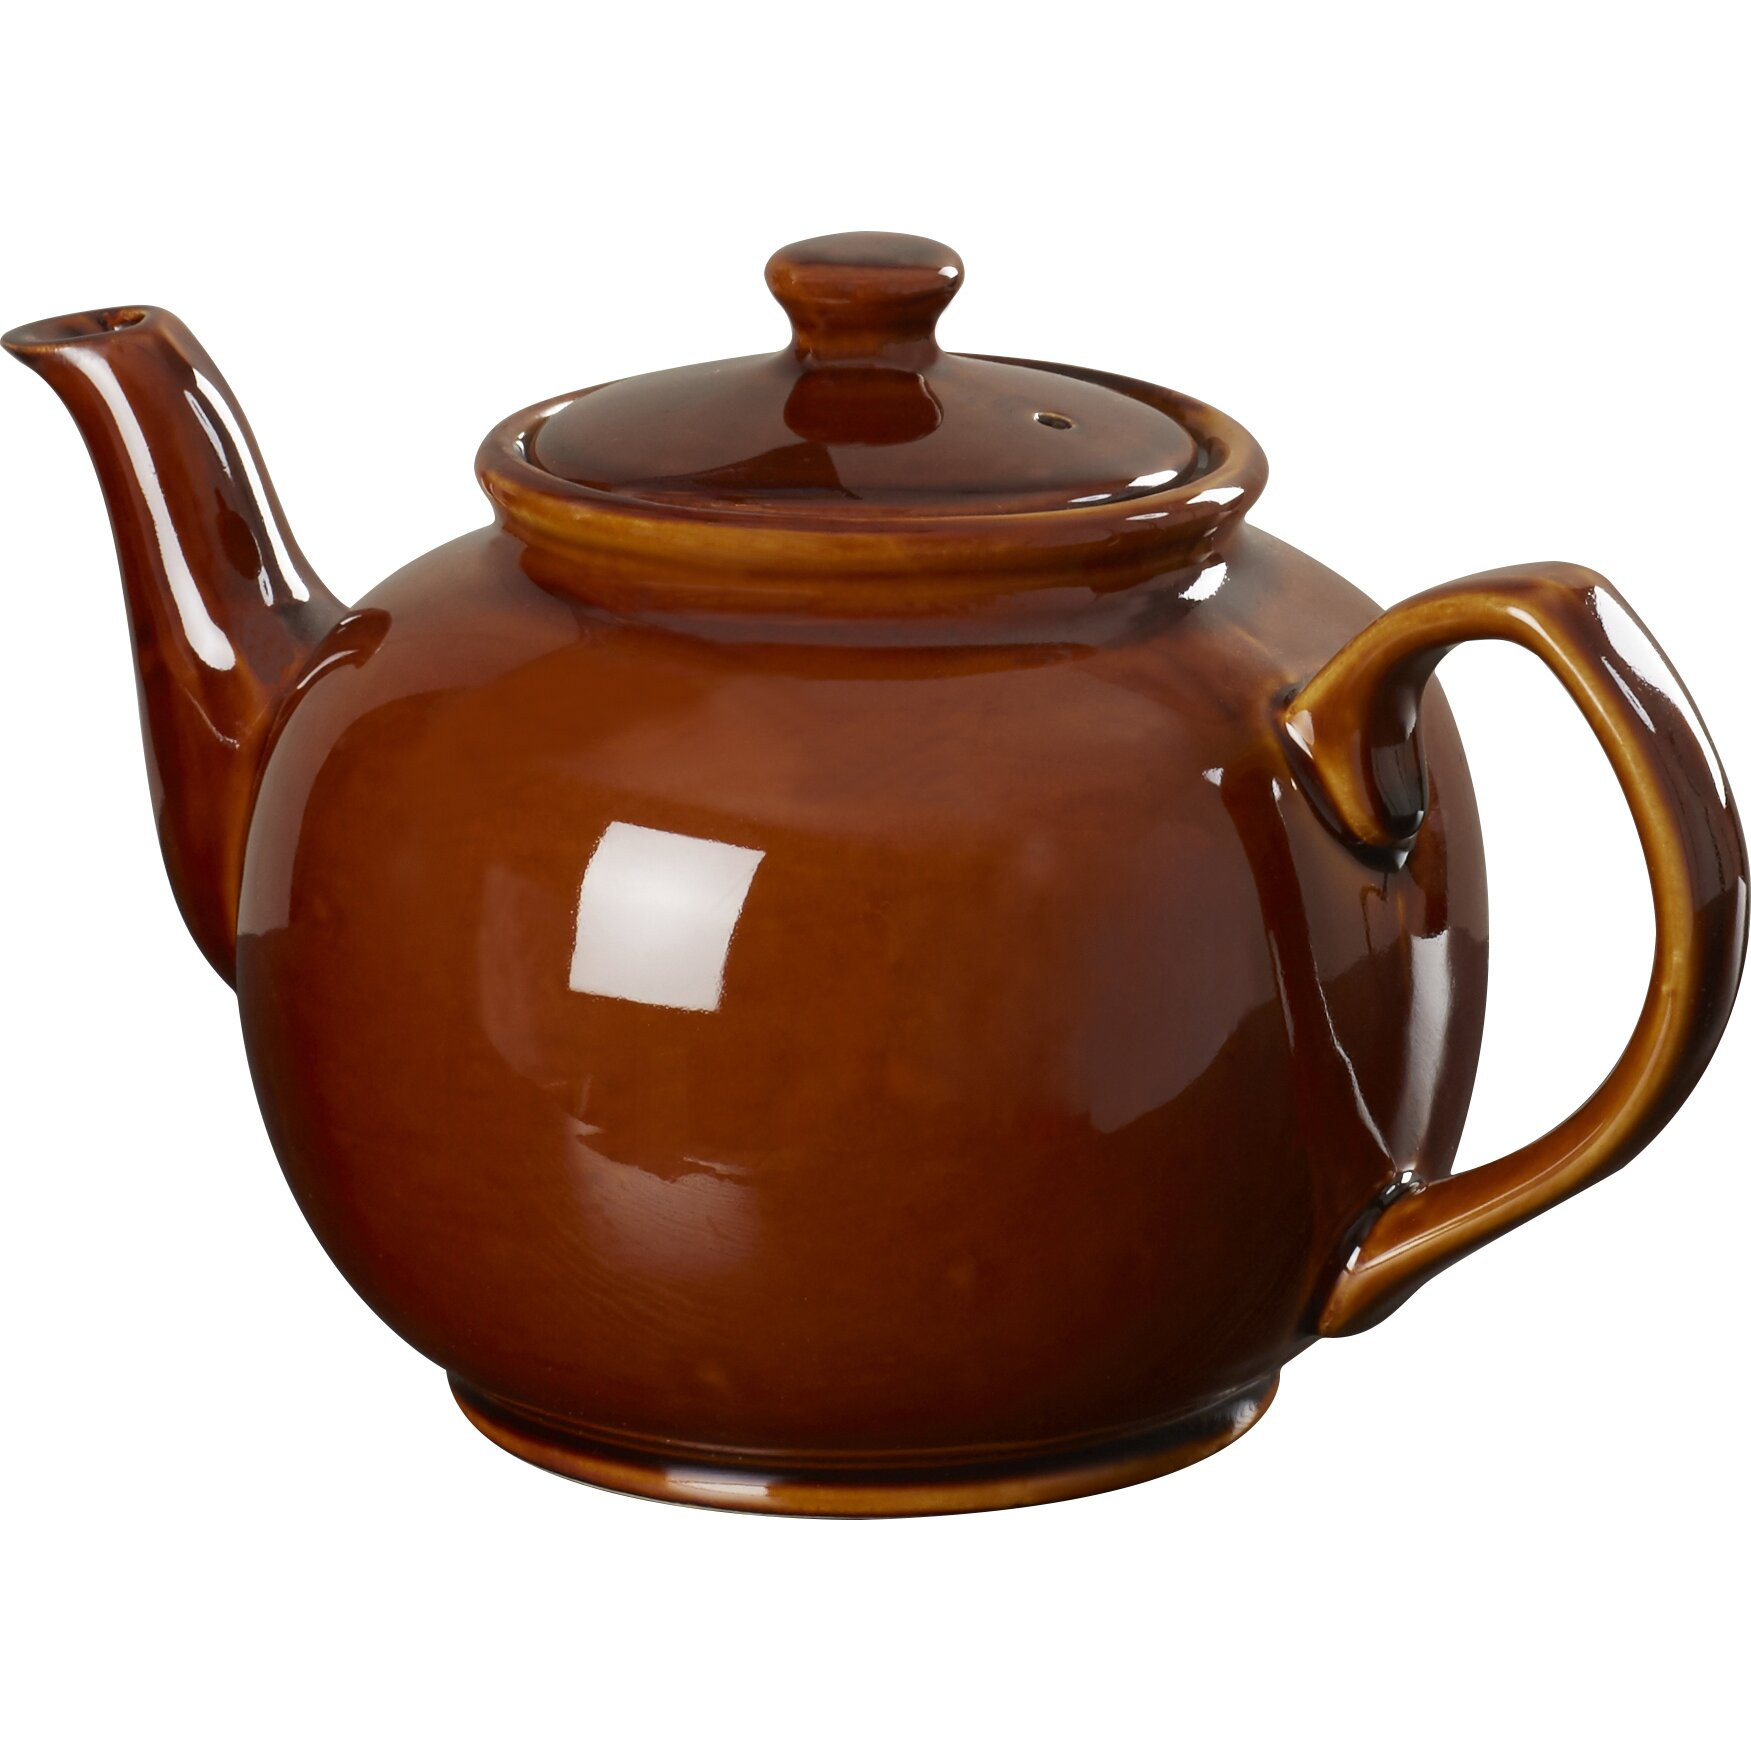 dating sadler teapots Brown betty 2 cup teapot  these are the original brown betty teapots hand made in england using methods dating back to the 1700s.